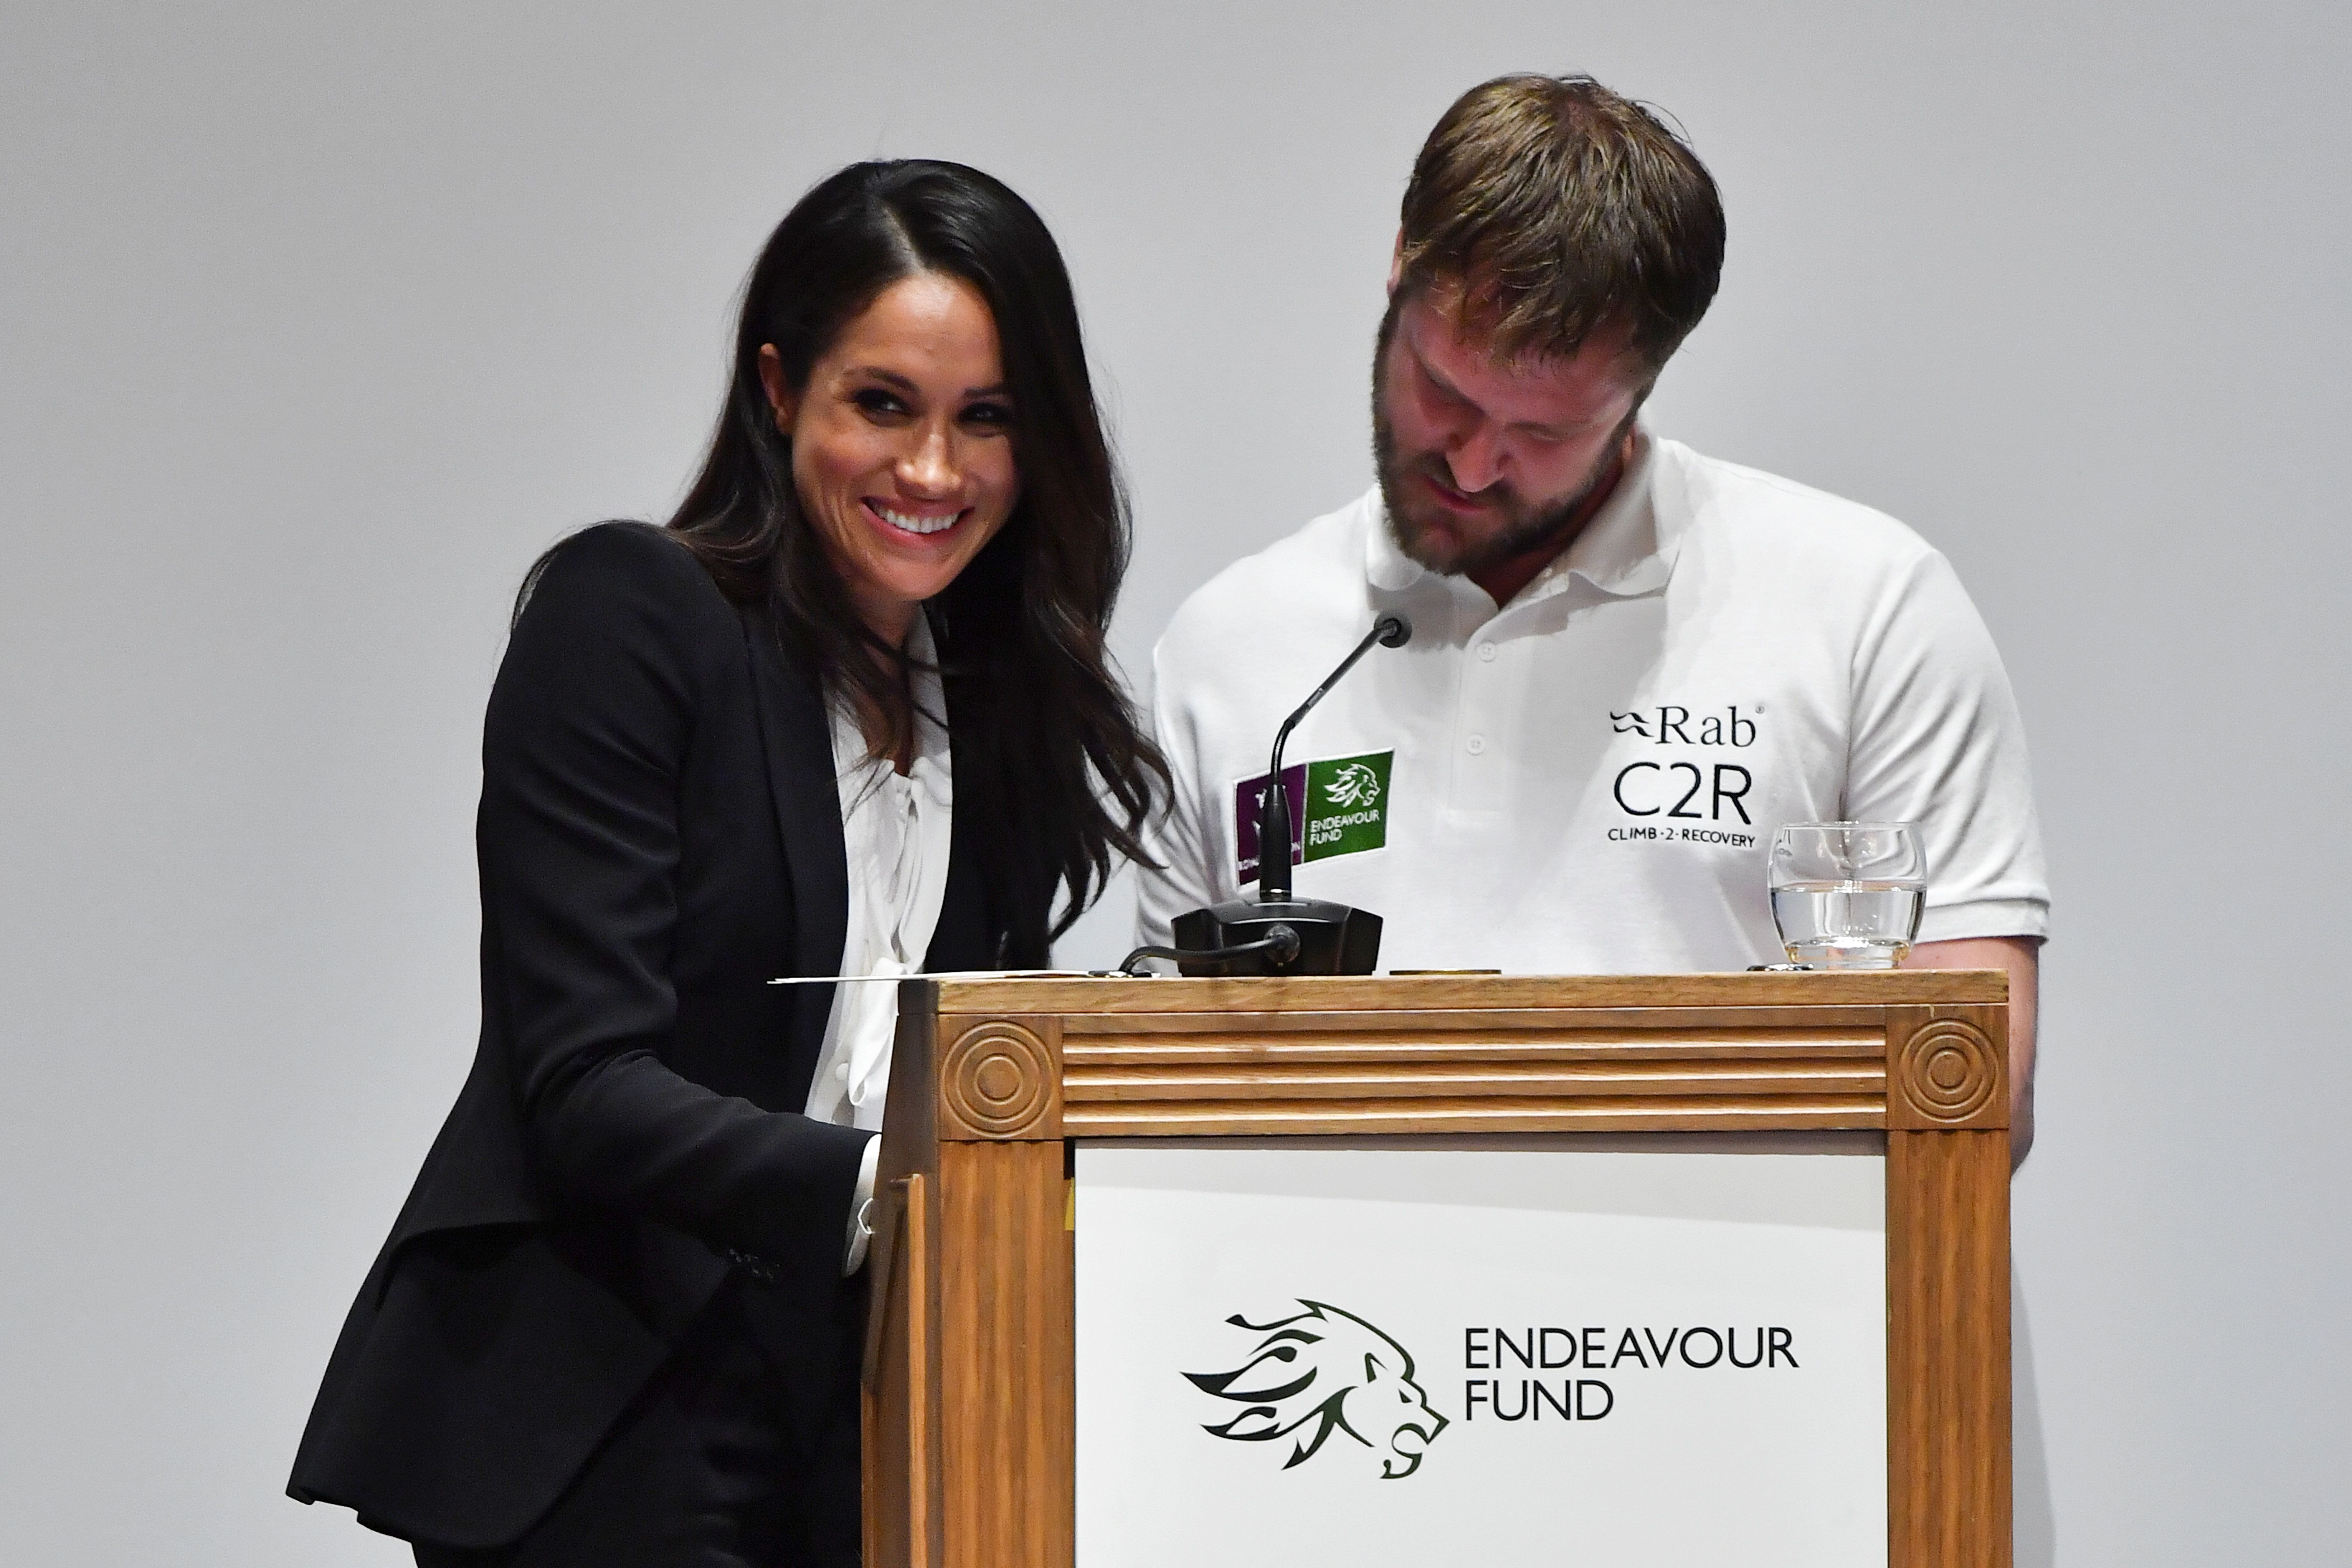 Britain's Prince Harry's fiancee U.S. actor Meghan Markle helps with the award presentations at the annual Endeavour Fund Awards at Goldsmiths' Hall in London, Britain February 1, 2018. Picture taken February 1, 2018. REUTERS/Ben Stansall/Pool